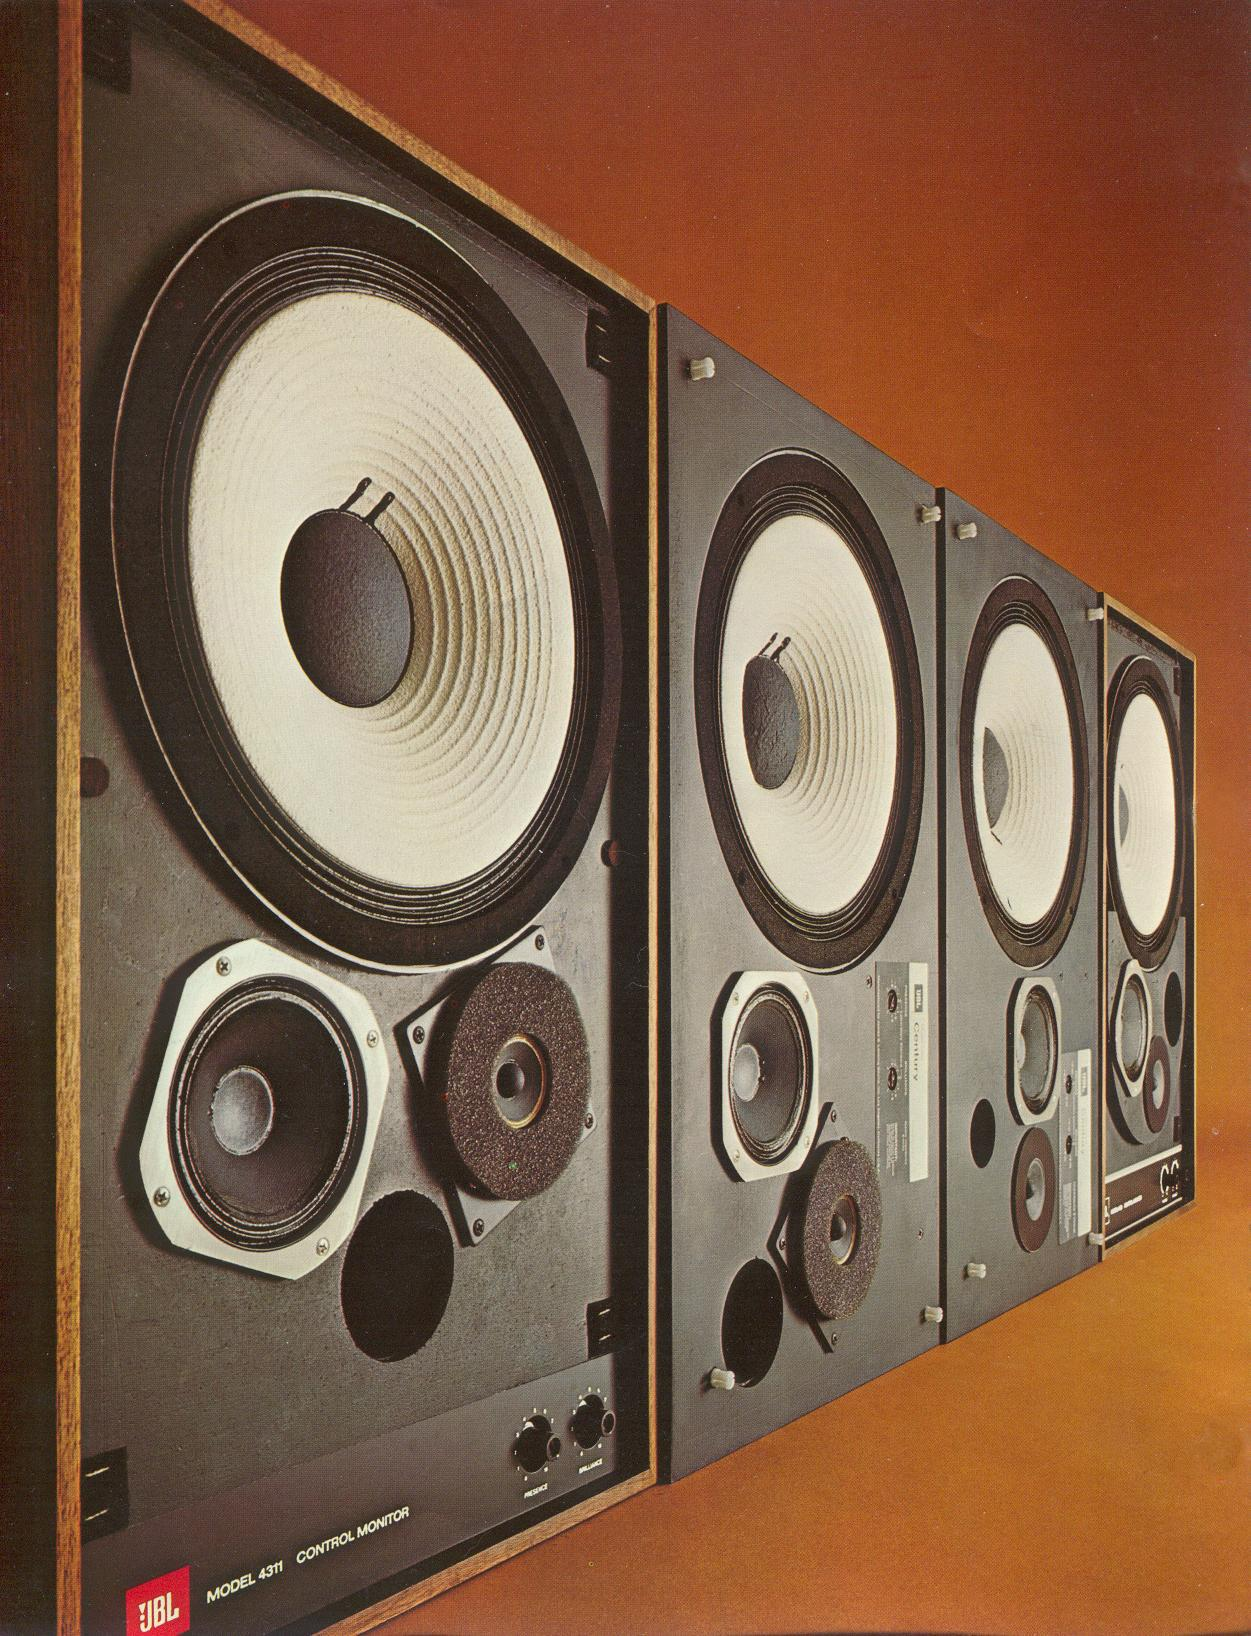 http://www.audioheritage.org/images/jbl/extracts/l100-431x.jpg